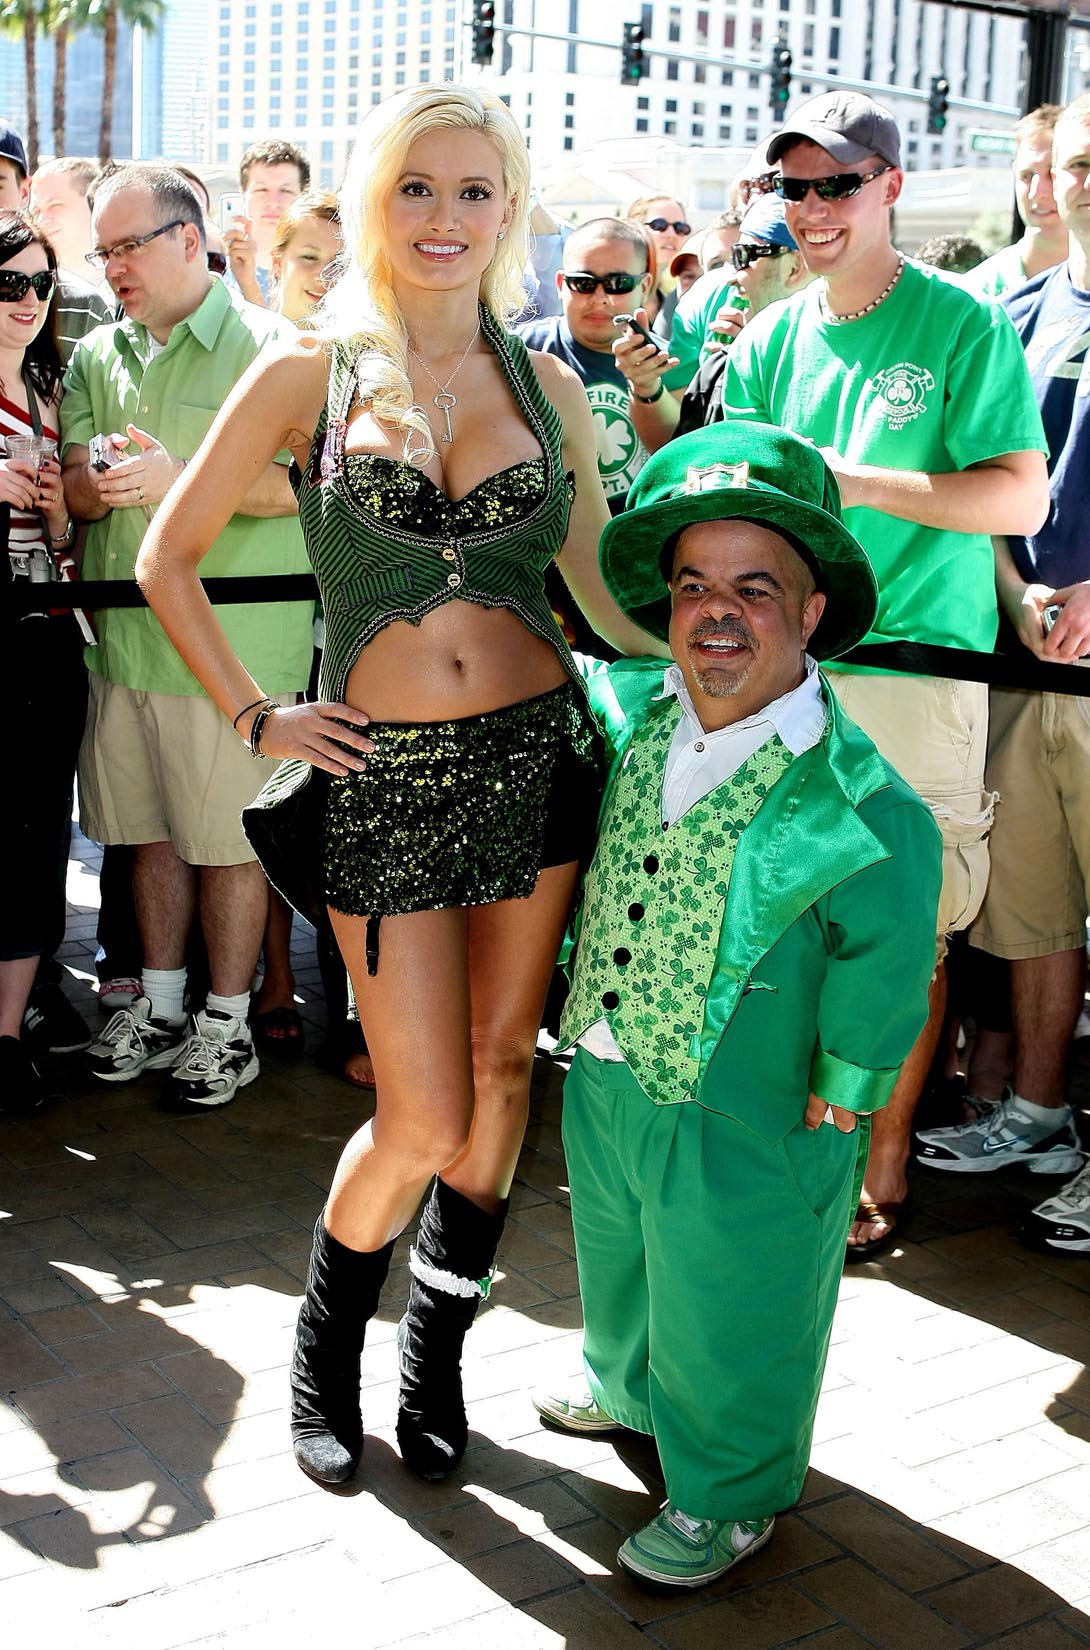 St patricks day boob pics impudence! Excuse